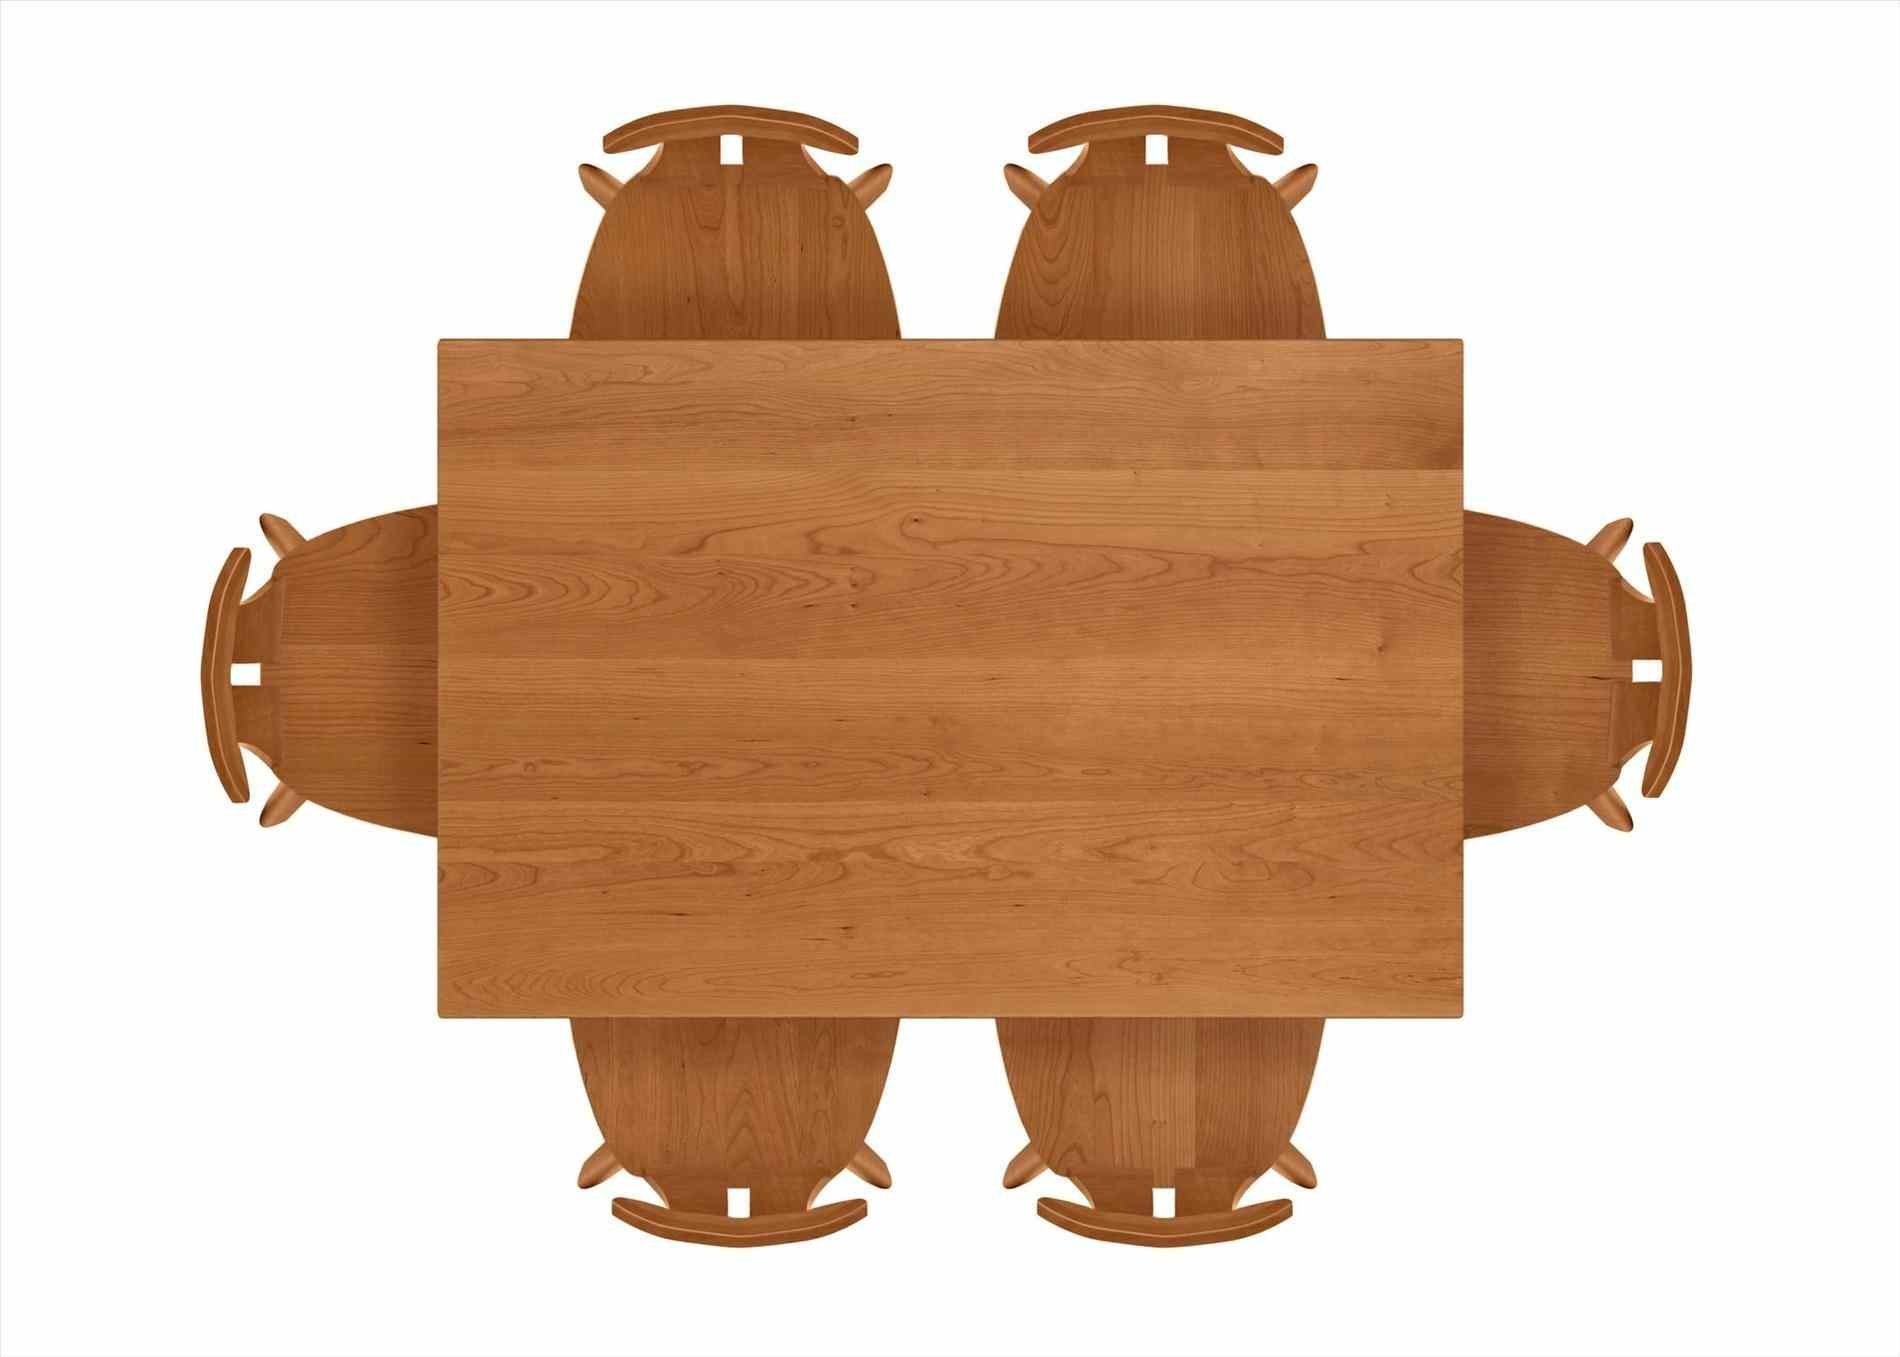 12403 Table free clipart.